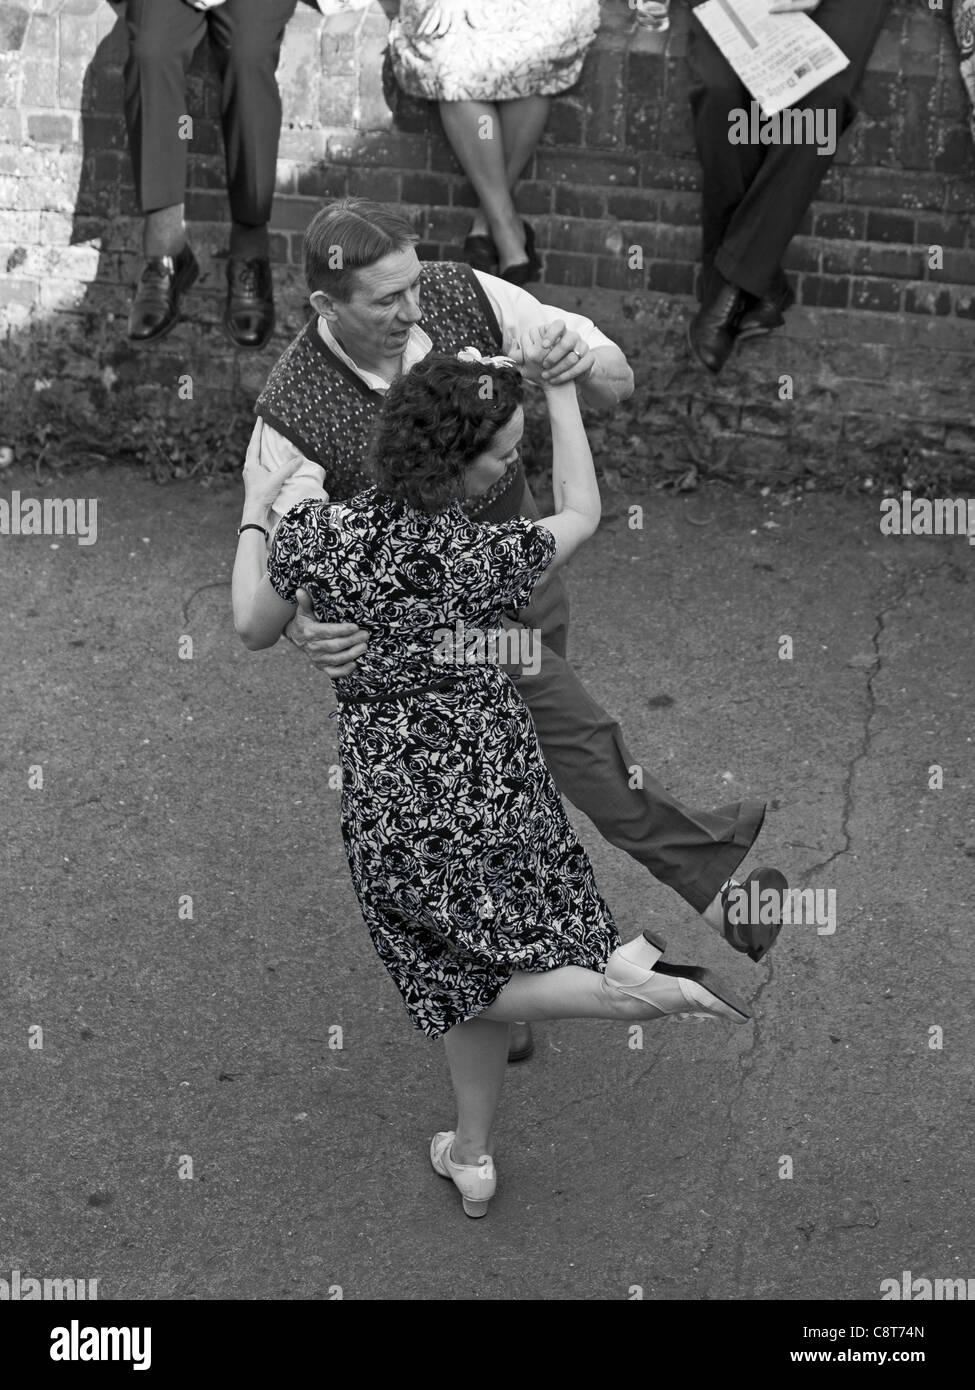 5c94aa04e40c Swing Dance 1940's Stock Photo: 39870453 - Alamy